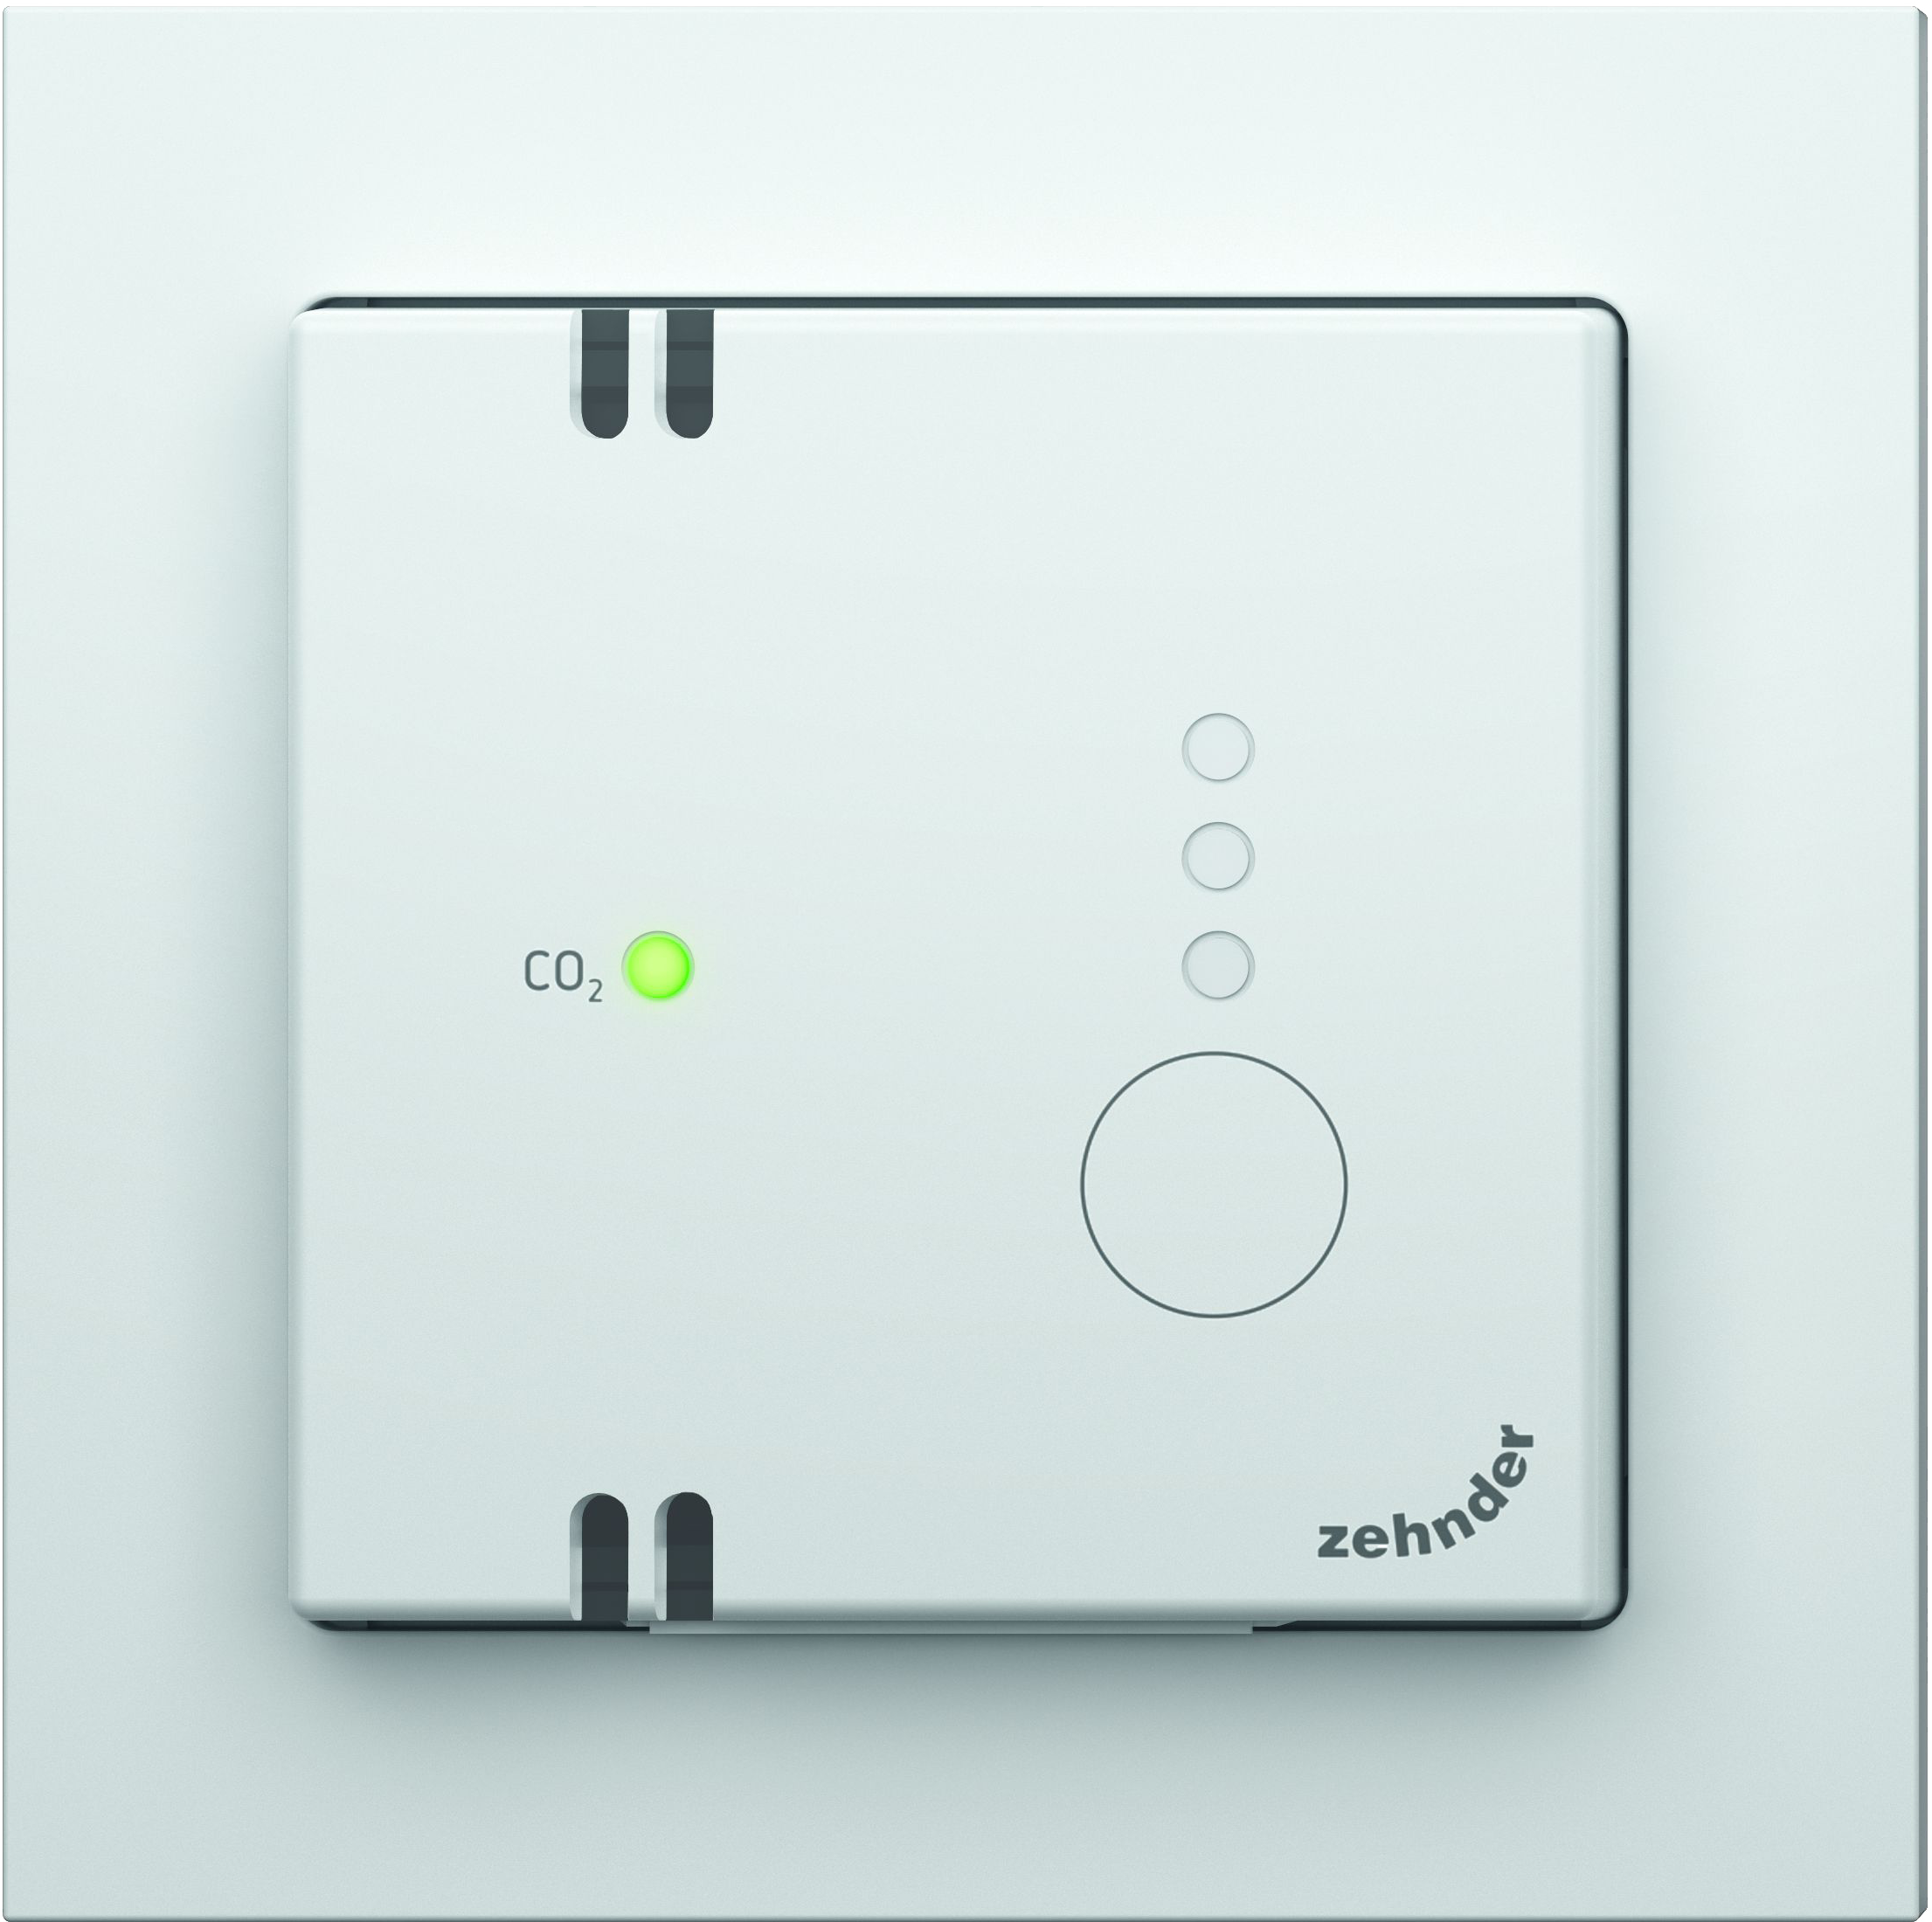 Zehnder-CO2-sensor-C55-Square-LED-on.png